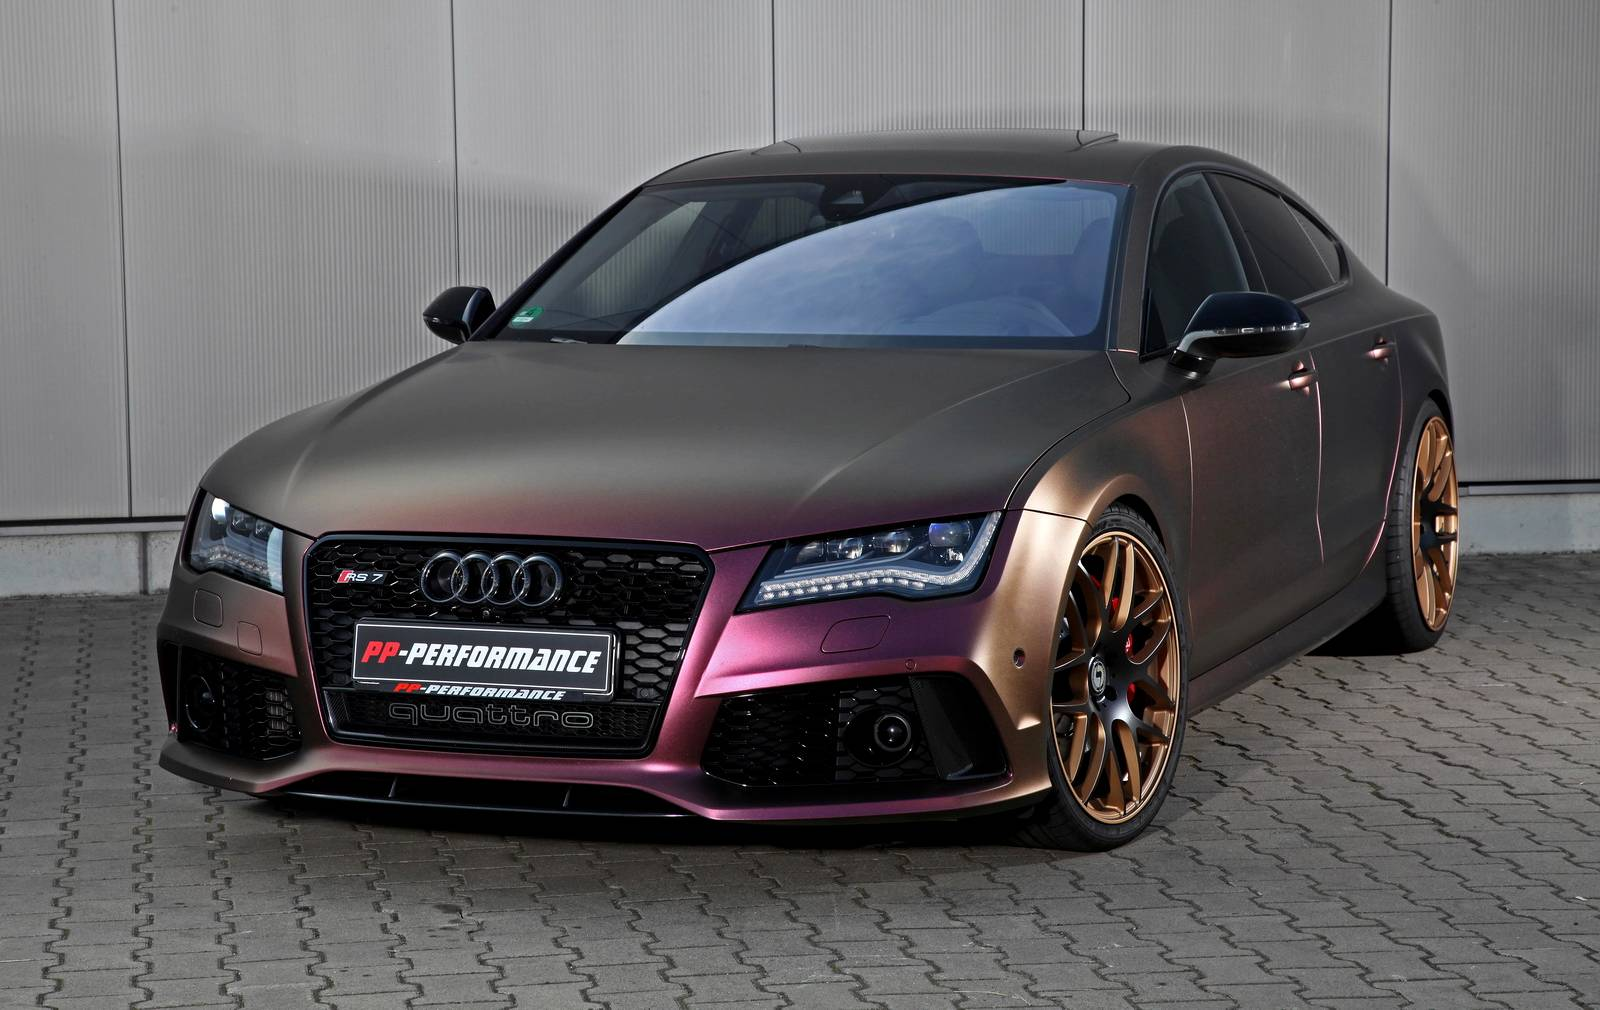 Audi-RS7-PP-Performance-9.jpg